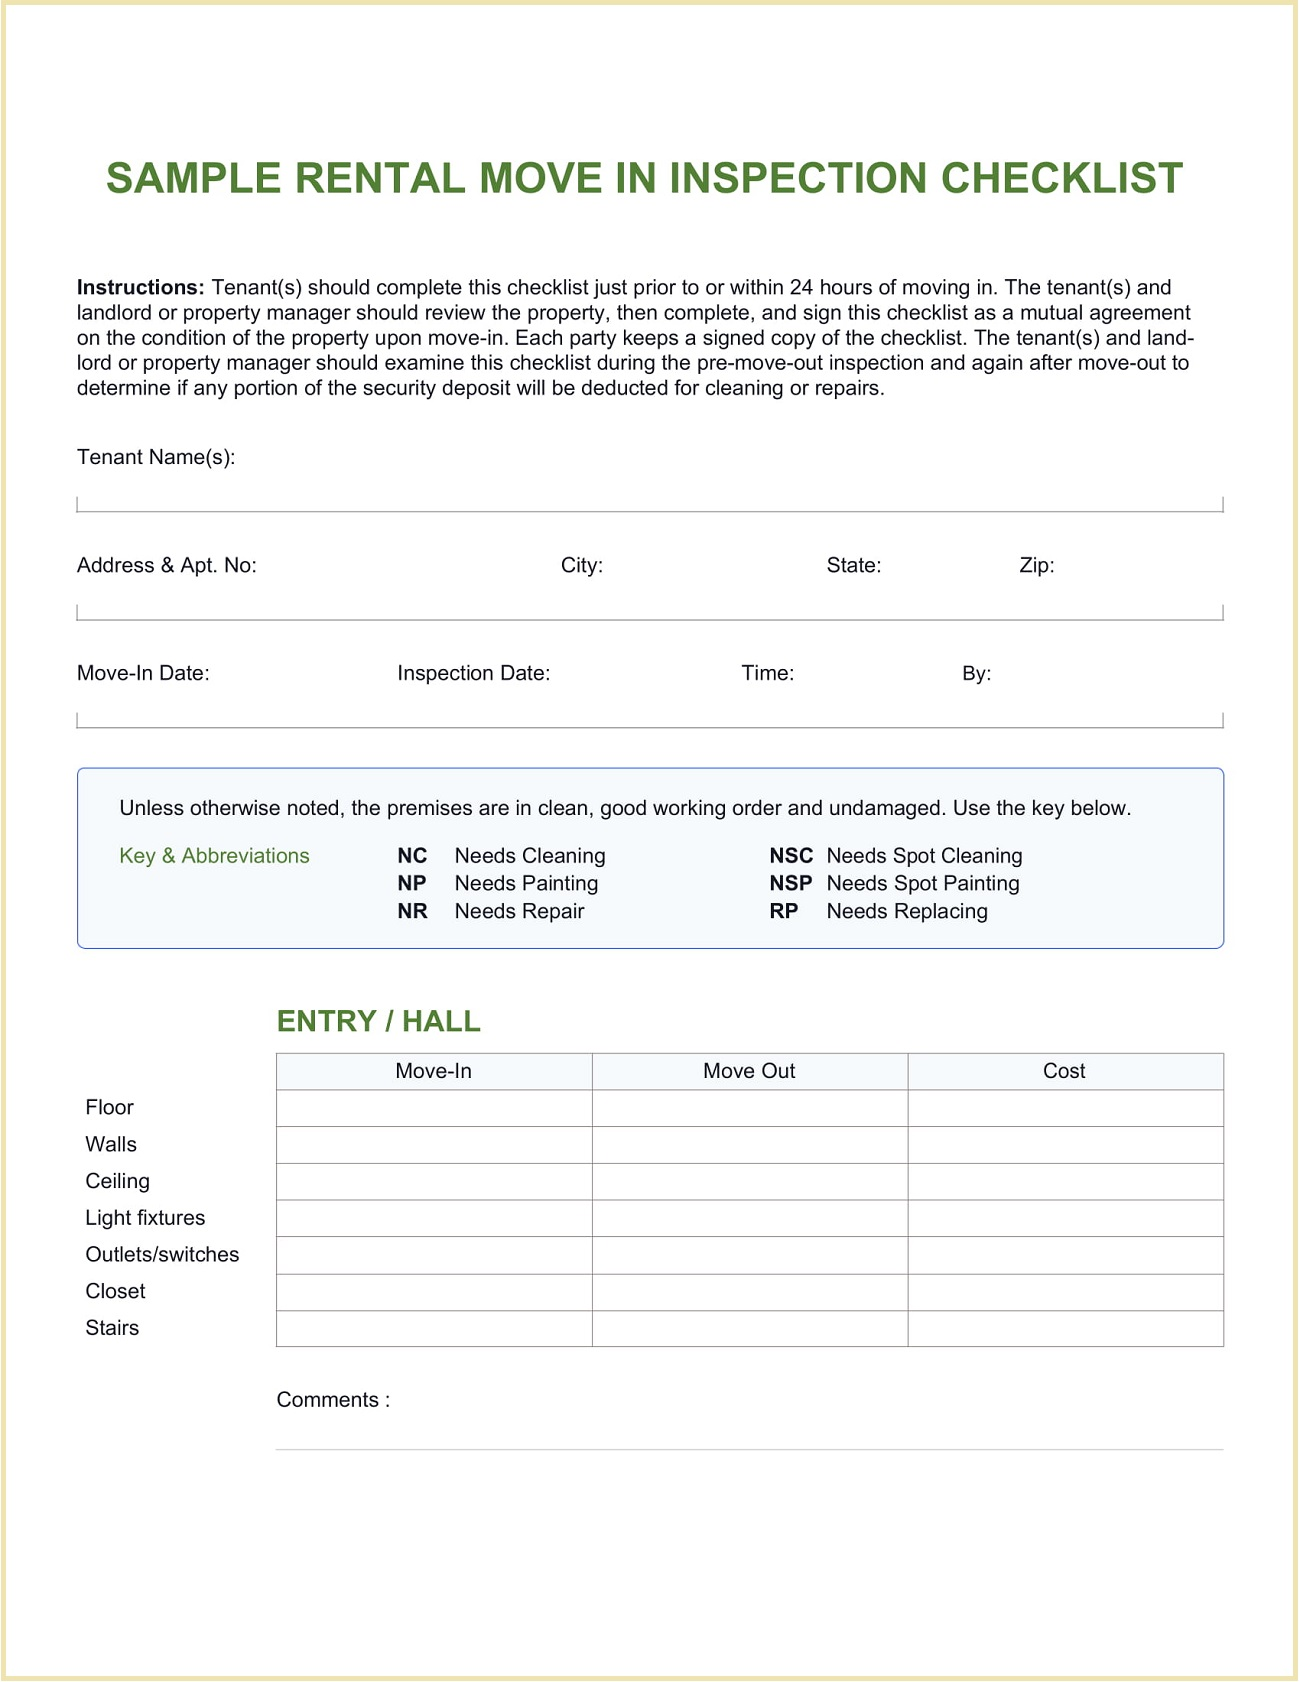 Sample Rental Move In Checklist Template Word Property Inspection Editable Move-in Doc  Full